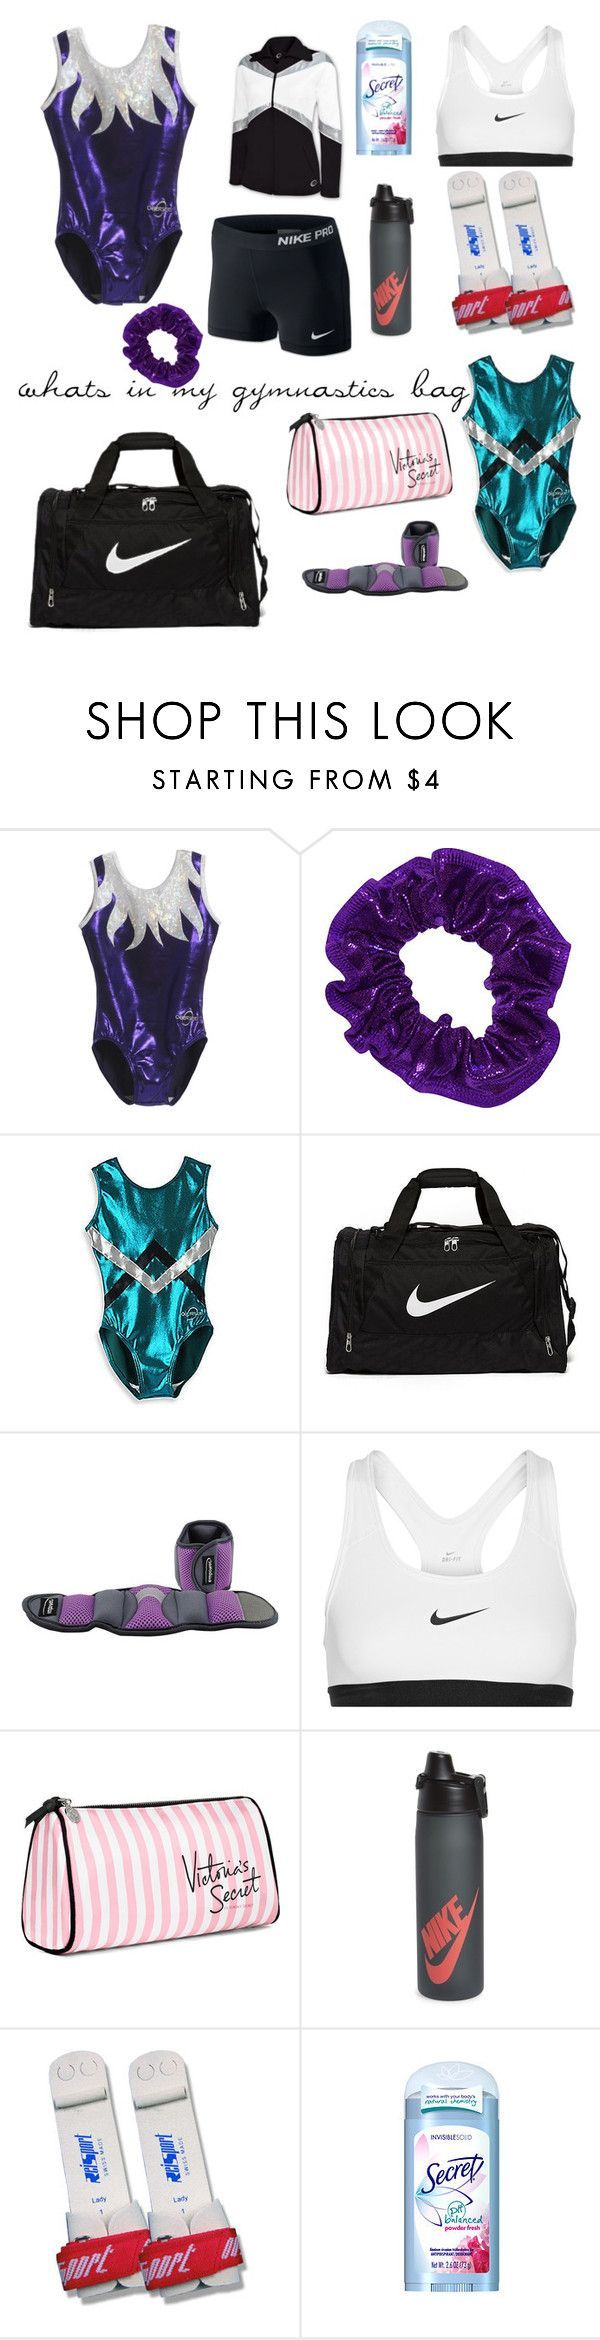 """whats in my gymnastics bag"" by brooklynwhtie on Polyvore featuring NIKE and Victoria's Secret"